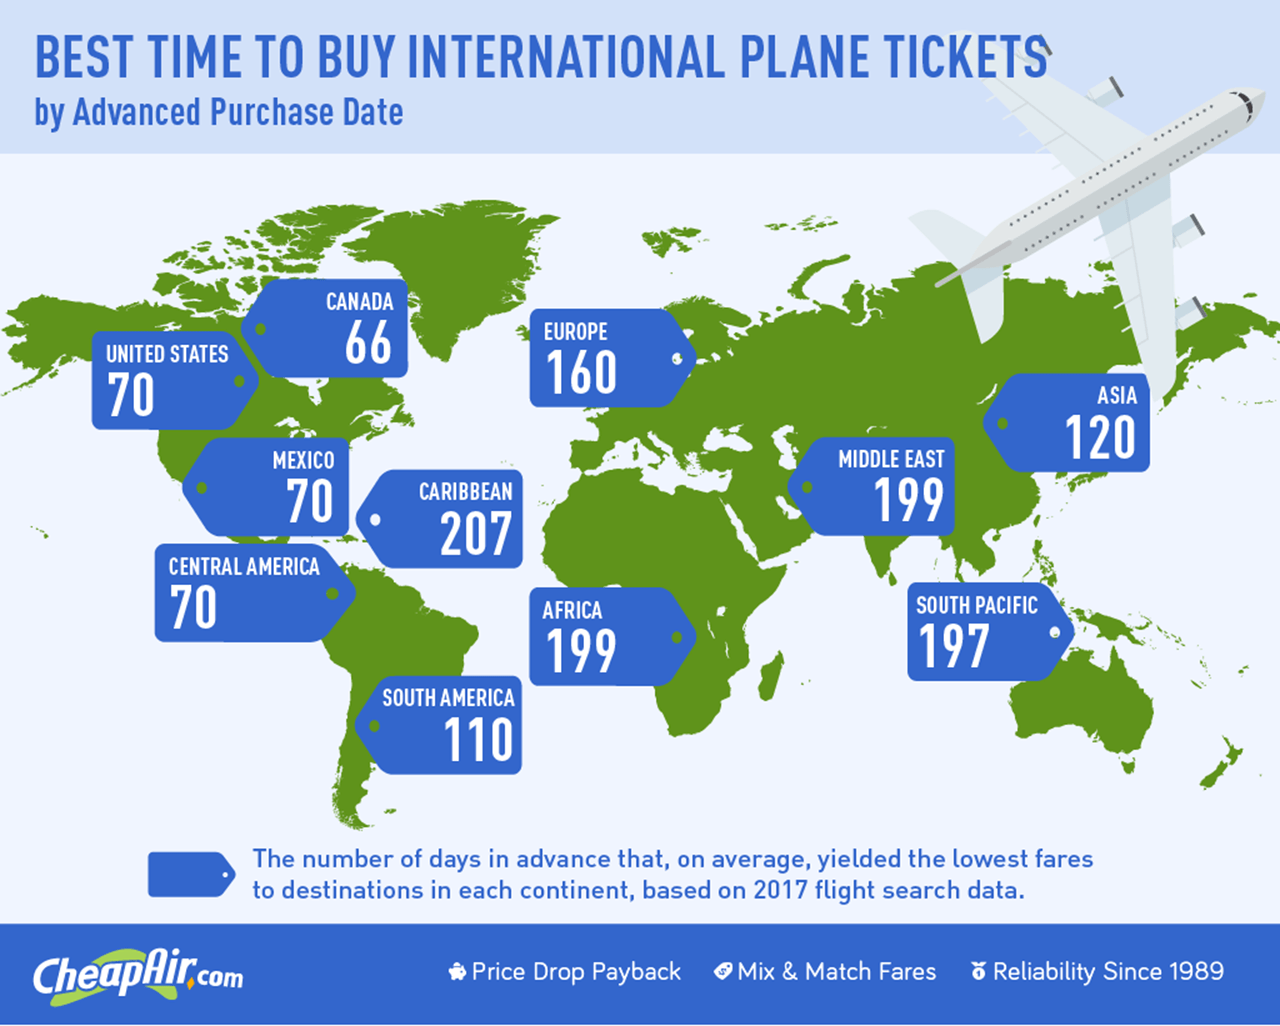 A new study shows what days are best to get the cheapest fares to destinations around the world.